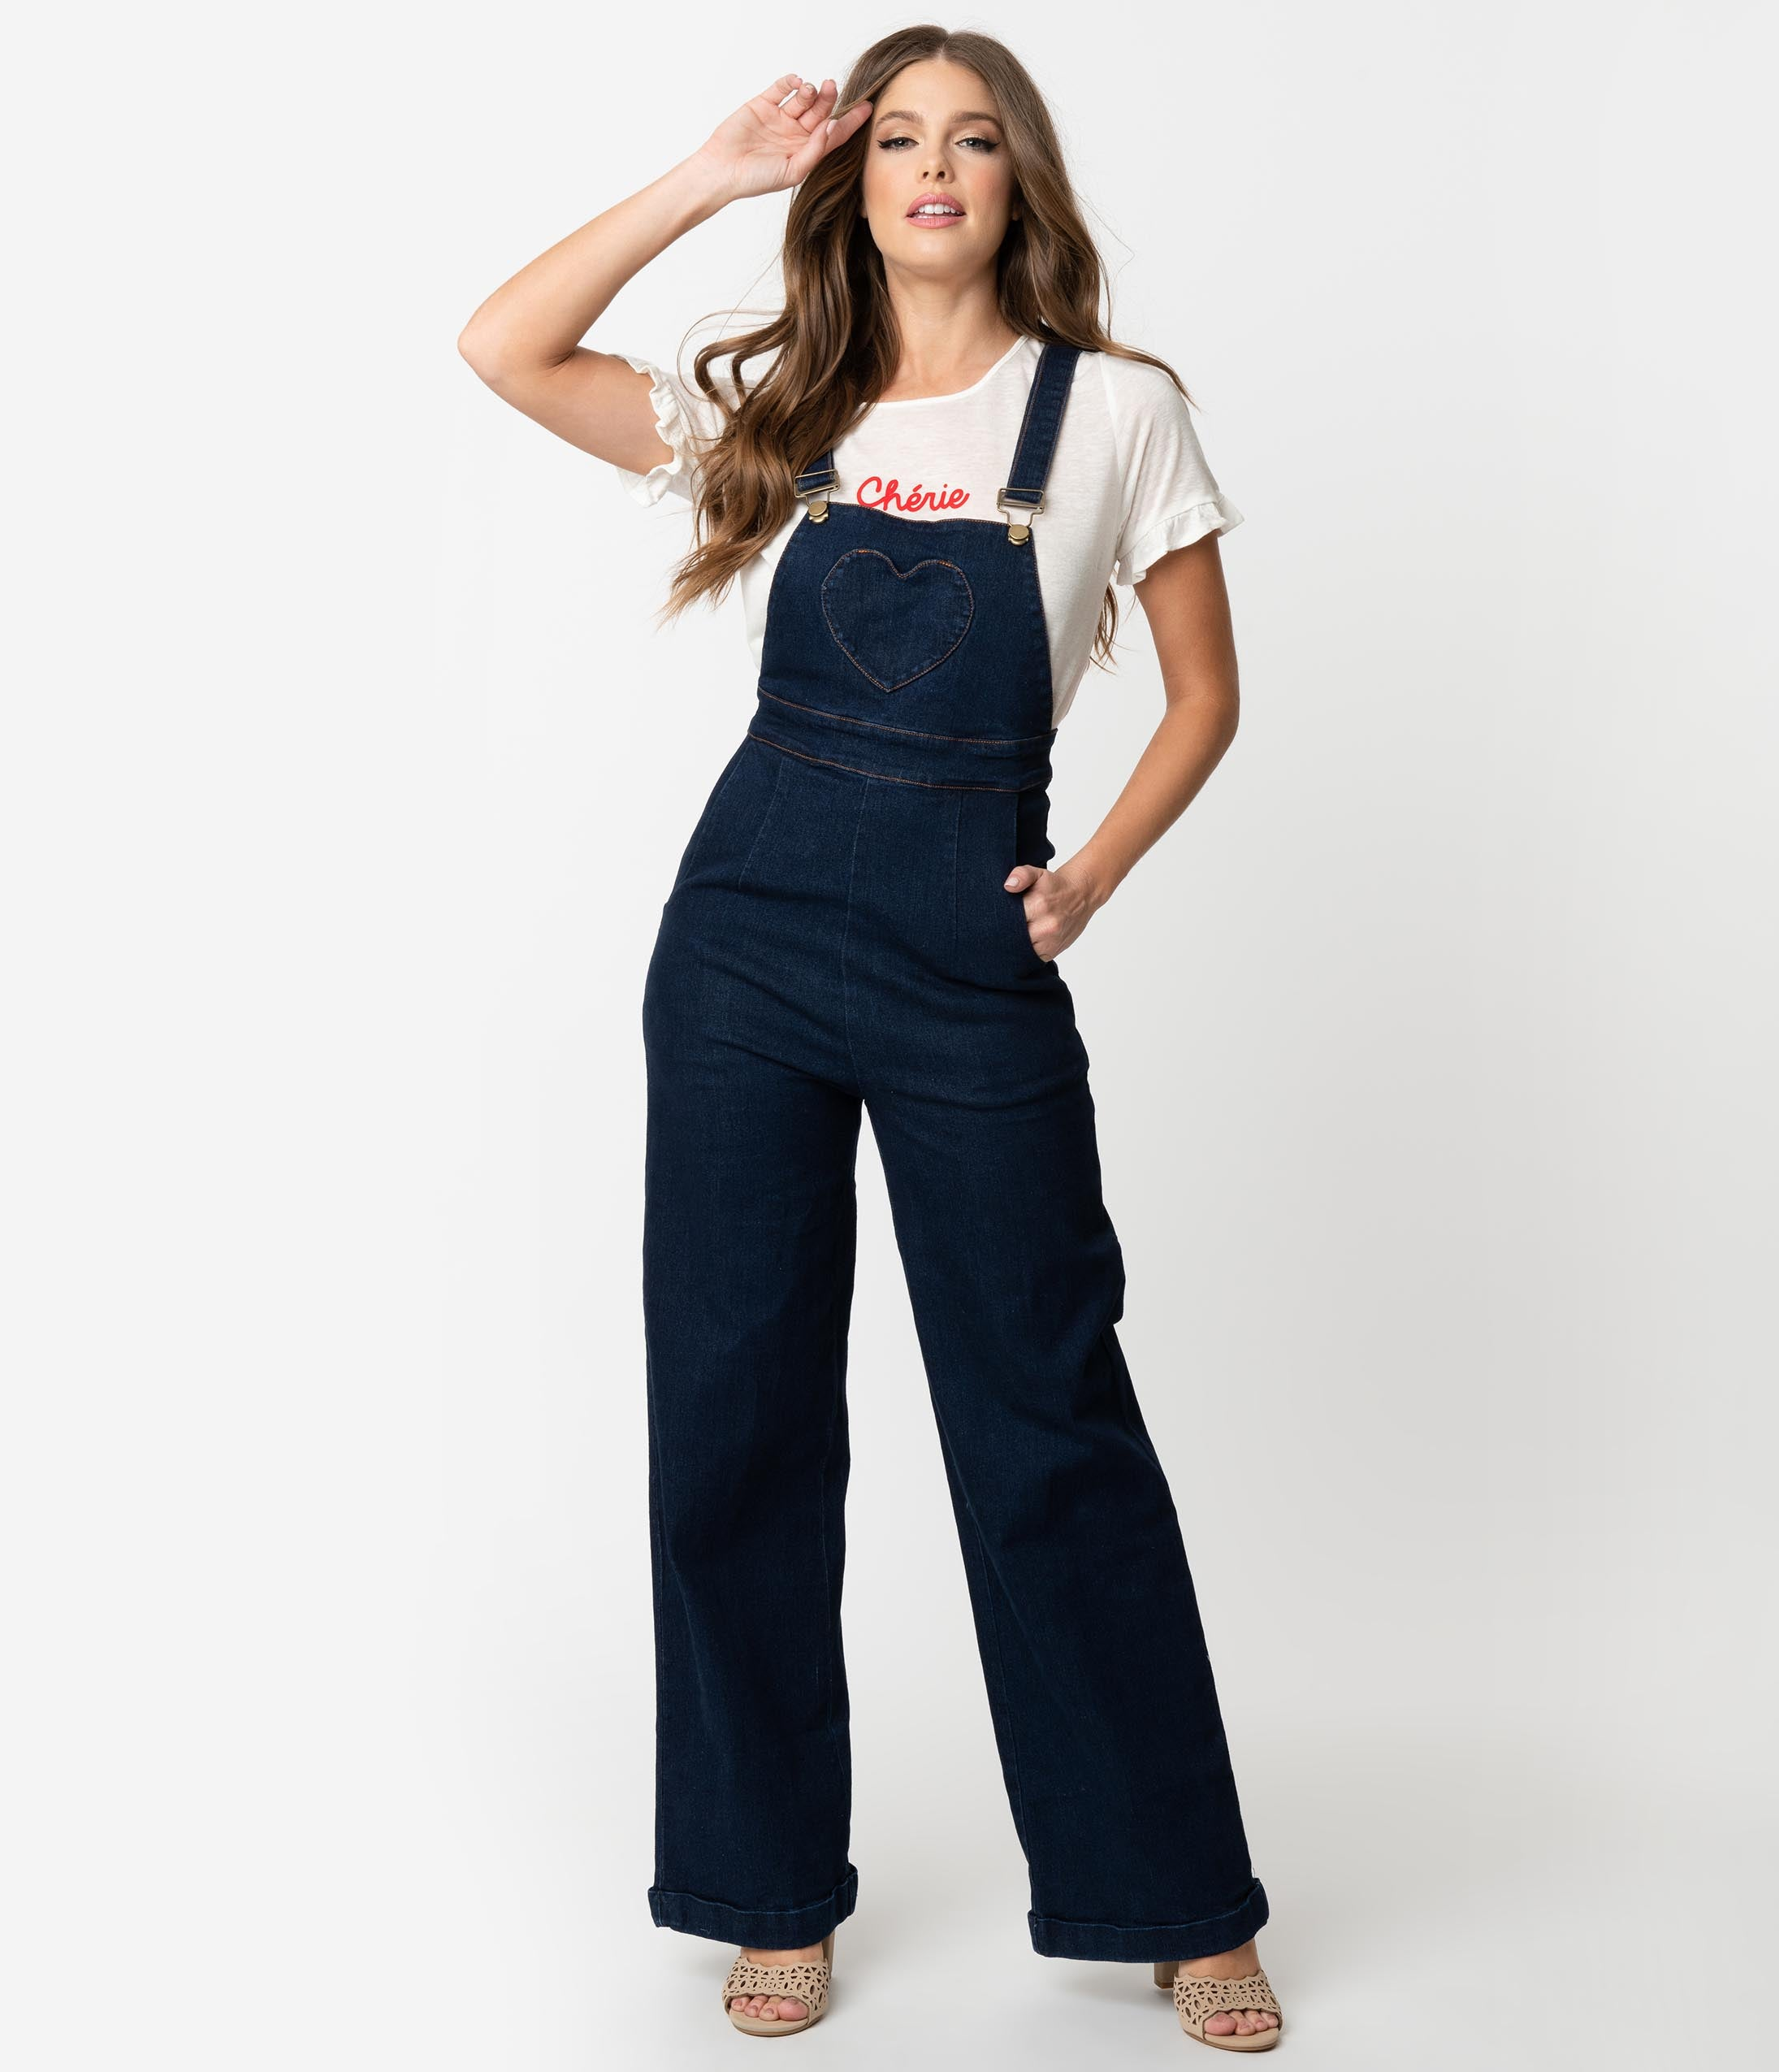 Vintage Overalls 1910s -1950s History & Shop Overalls Voodoo Vixen Dark Denim Blue Jeans Cotton Heart Pocket Natalia Overalls $88.00 AT vintagedancer.com